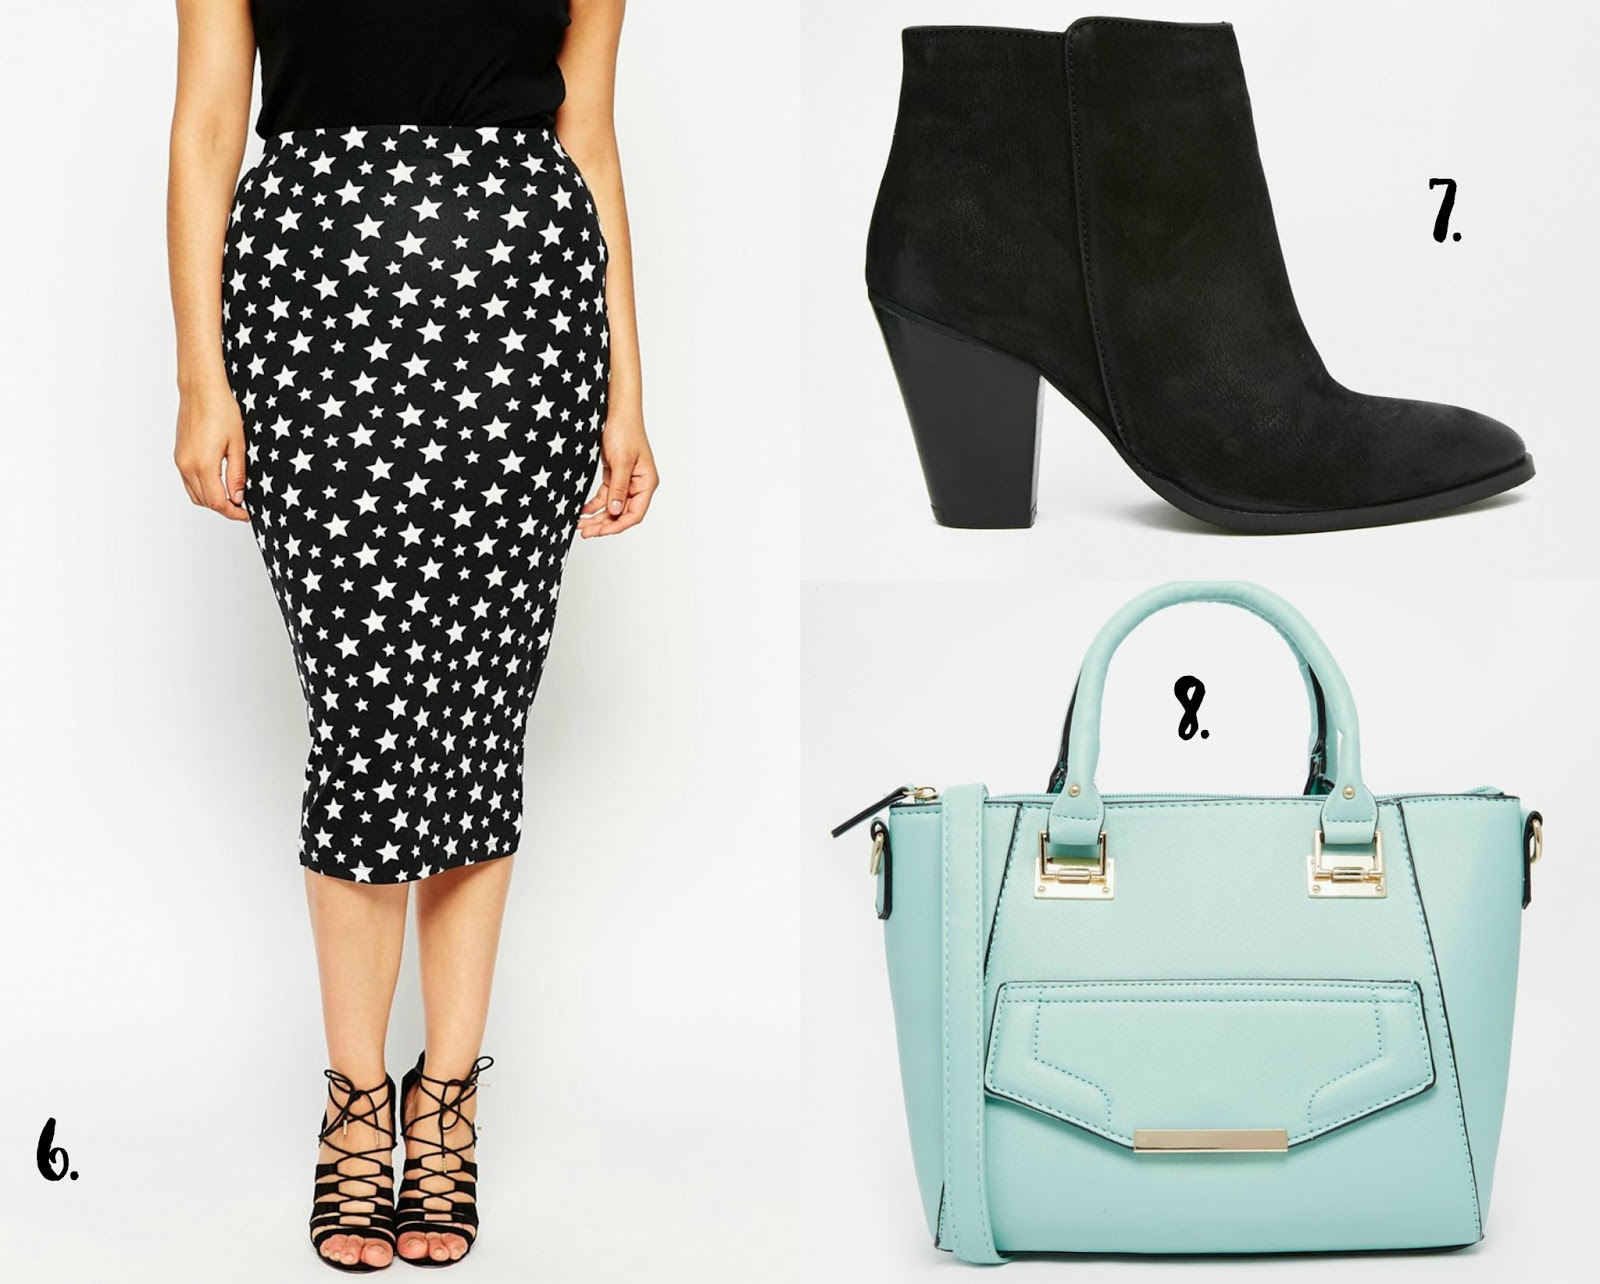 Asos Wishlist: Curve Range & Accessories